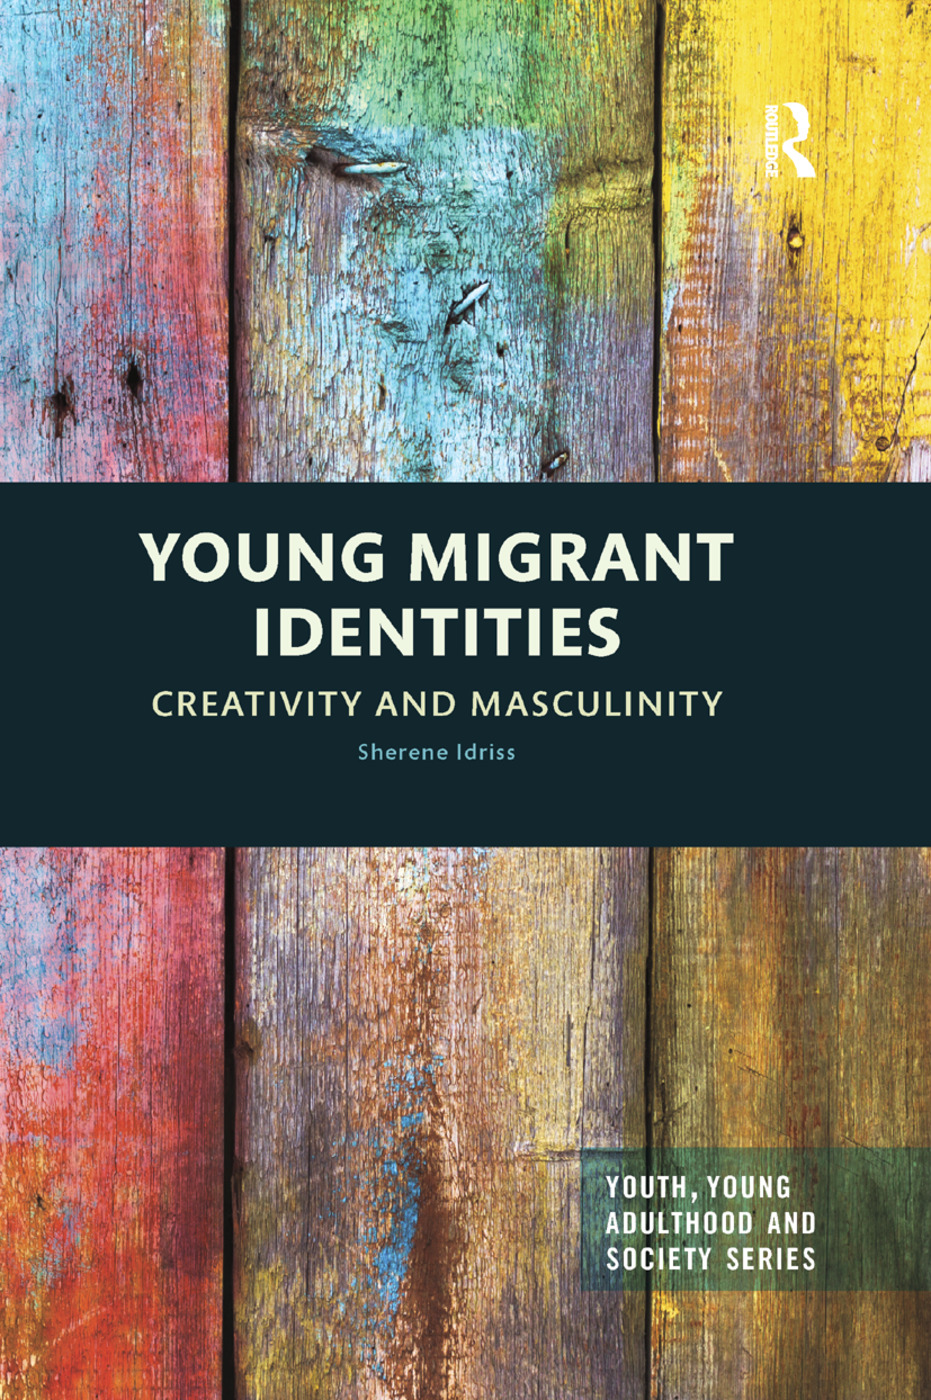 Young Migrant Identities: Creativity and Masculinity book cover